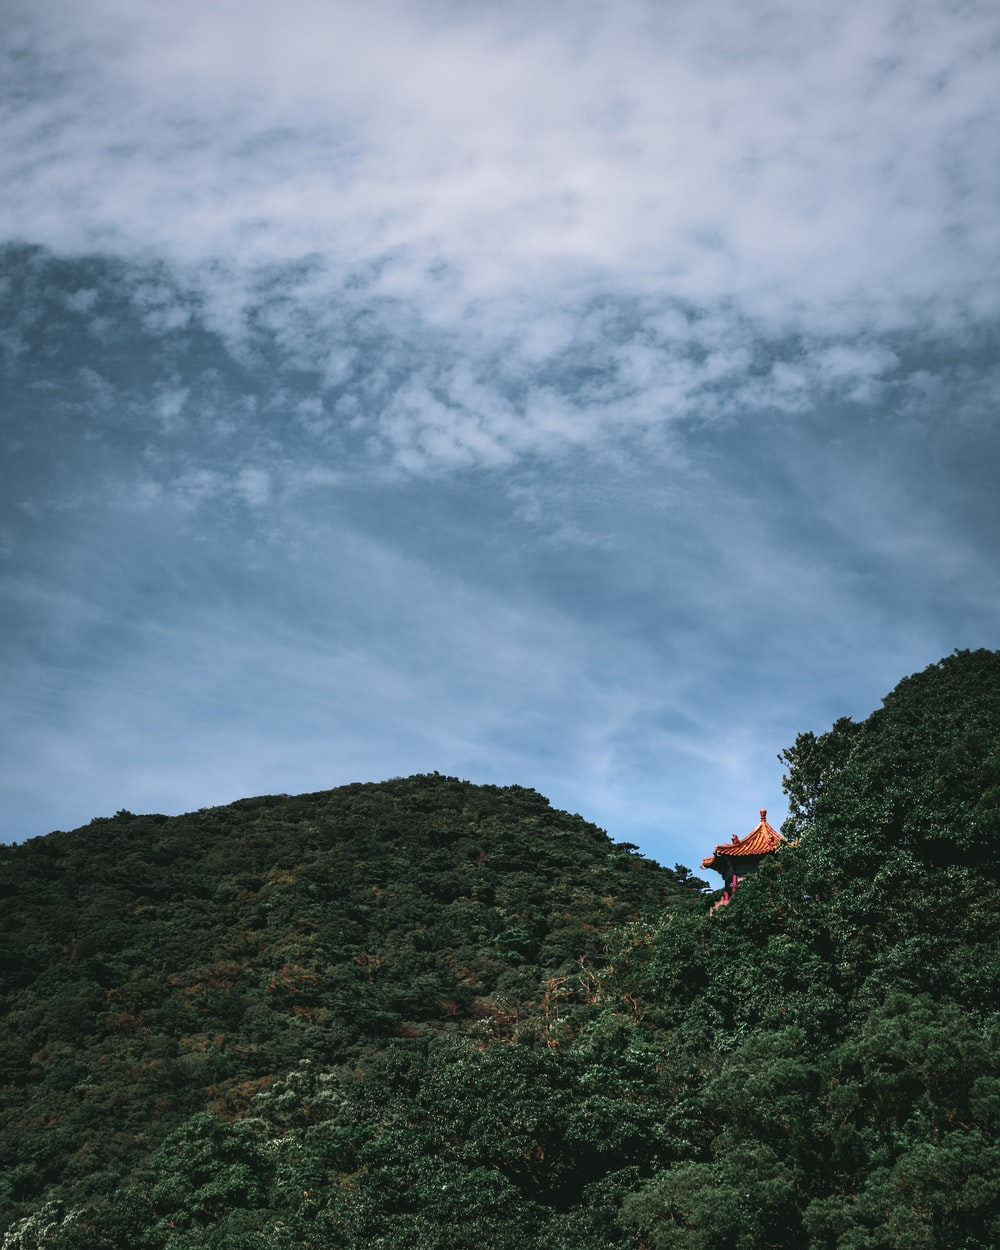 person in red jacket sitting on rock mountain under cloudy sky during daytime